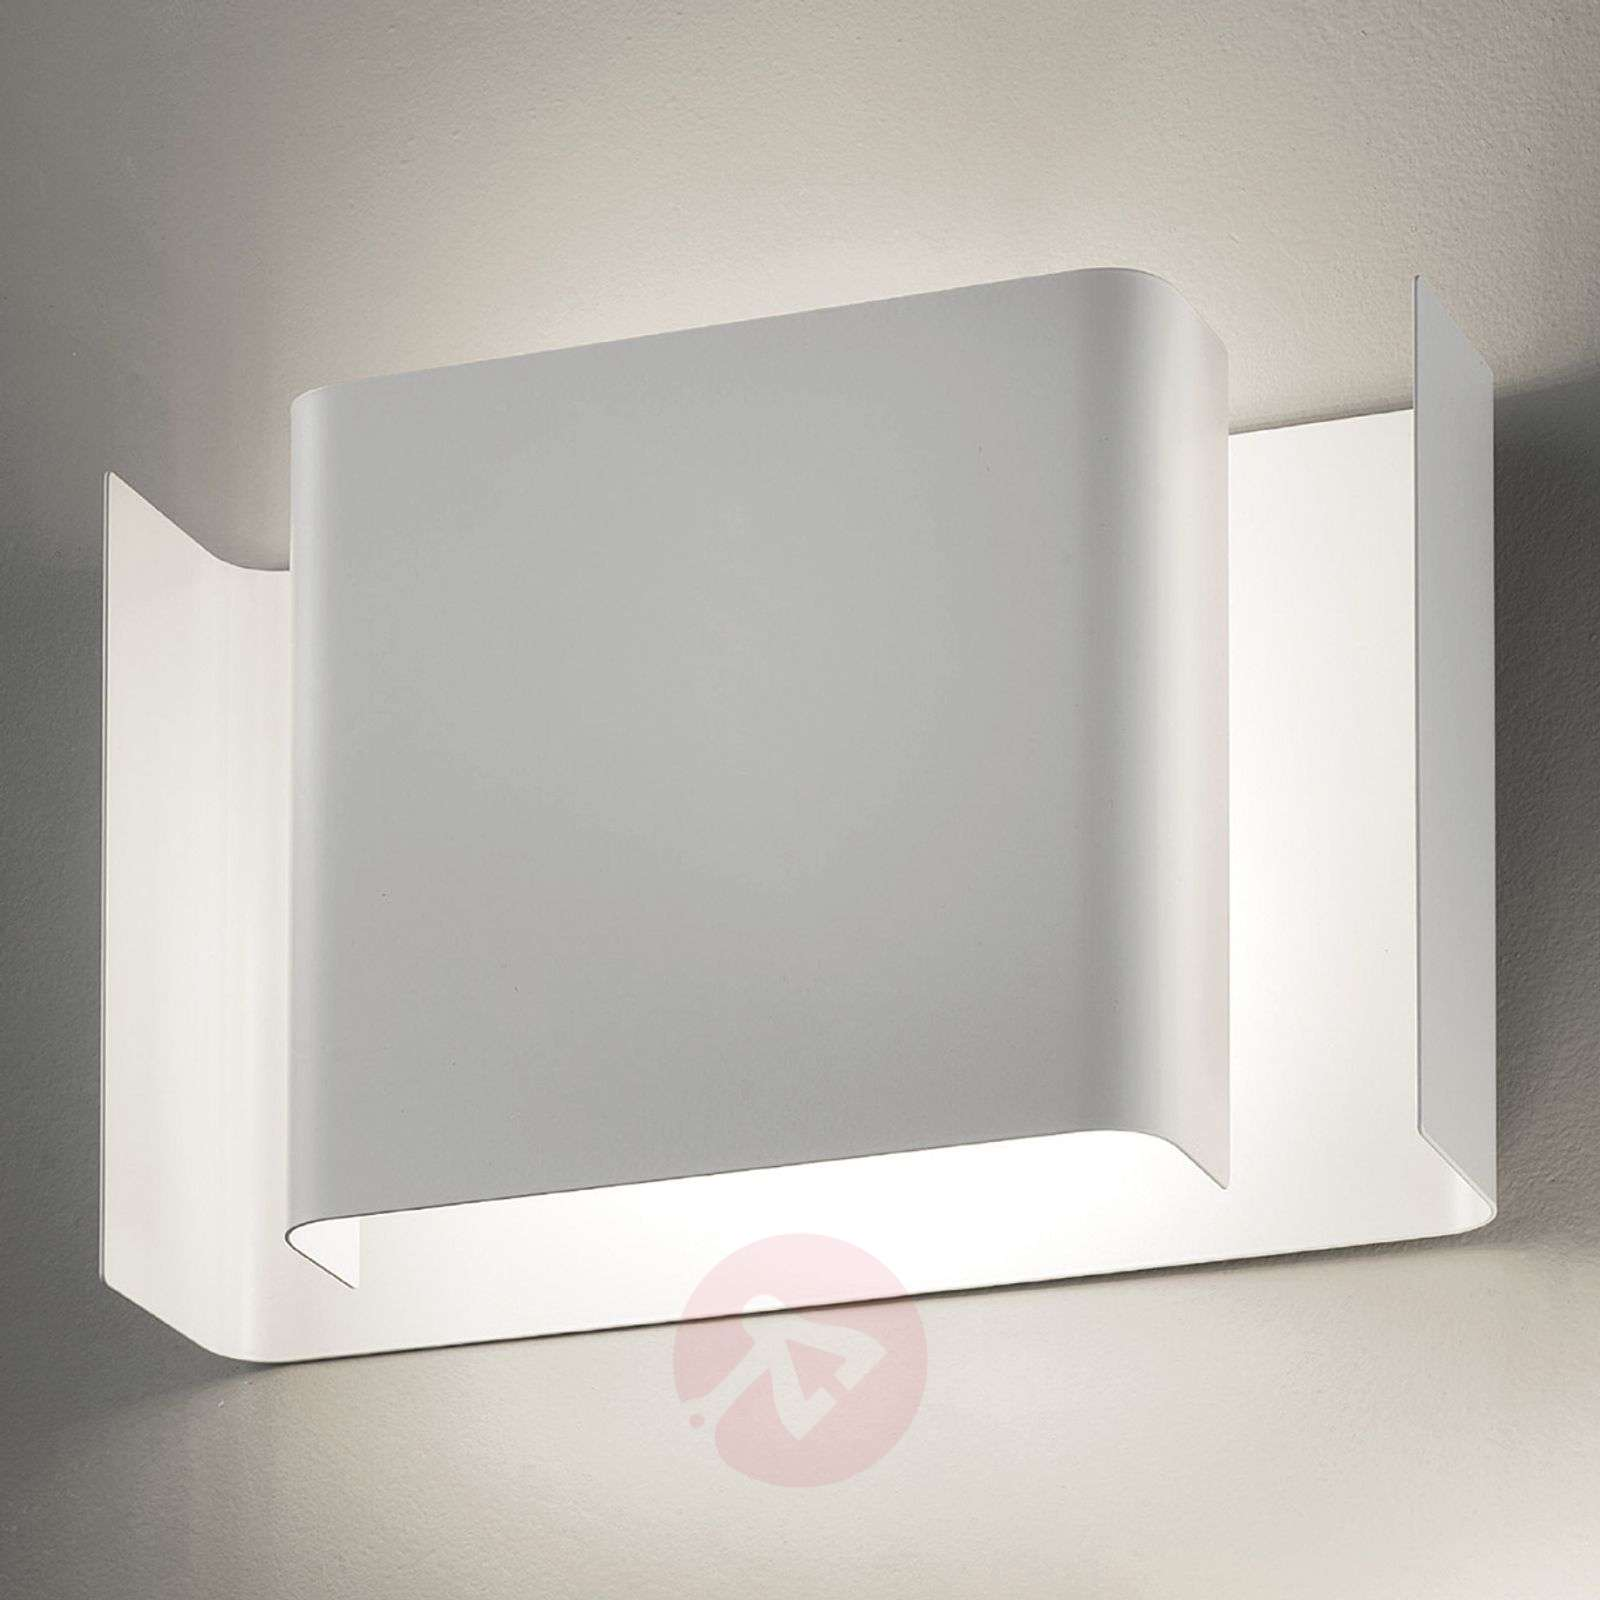 Applique LED Alalunga blanche-5501113-01